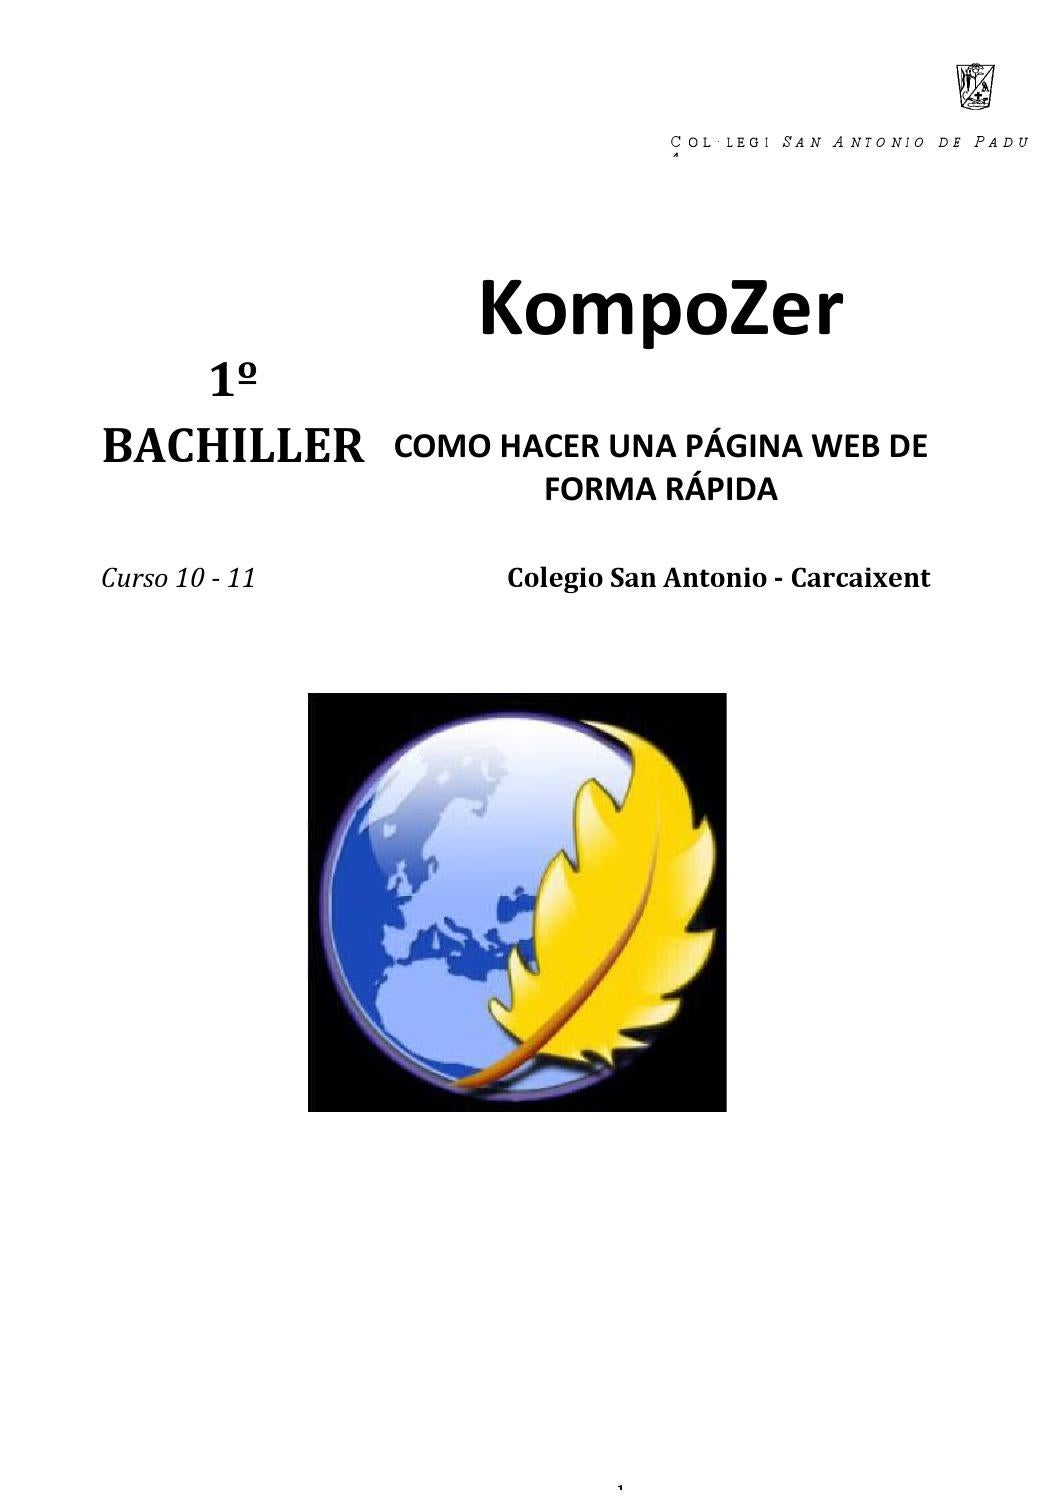 Manual komposer 1º bachiller en word 7jul14 by Juan José Sánchez de ...